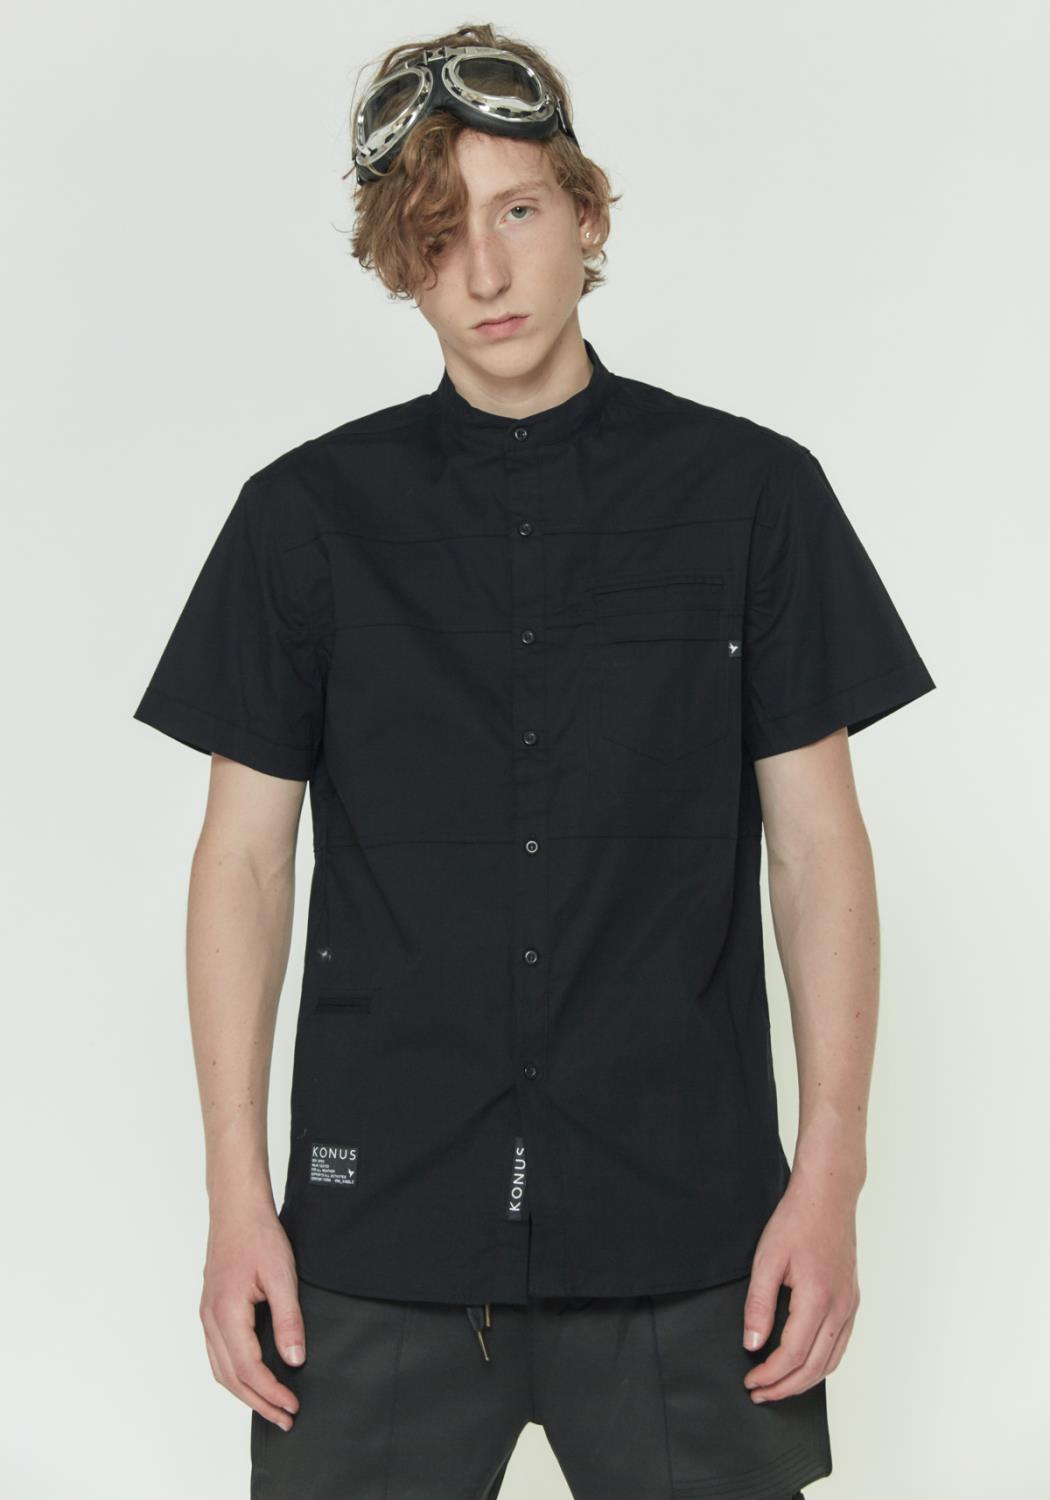 Konus Short Sleeve Band Collar Shirt with Panels